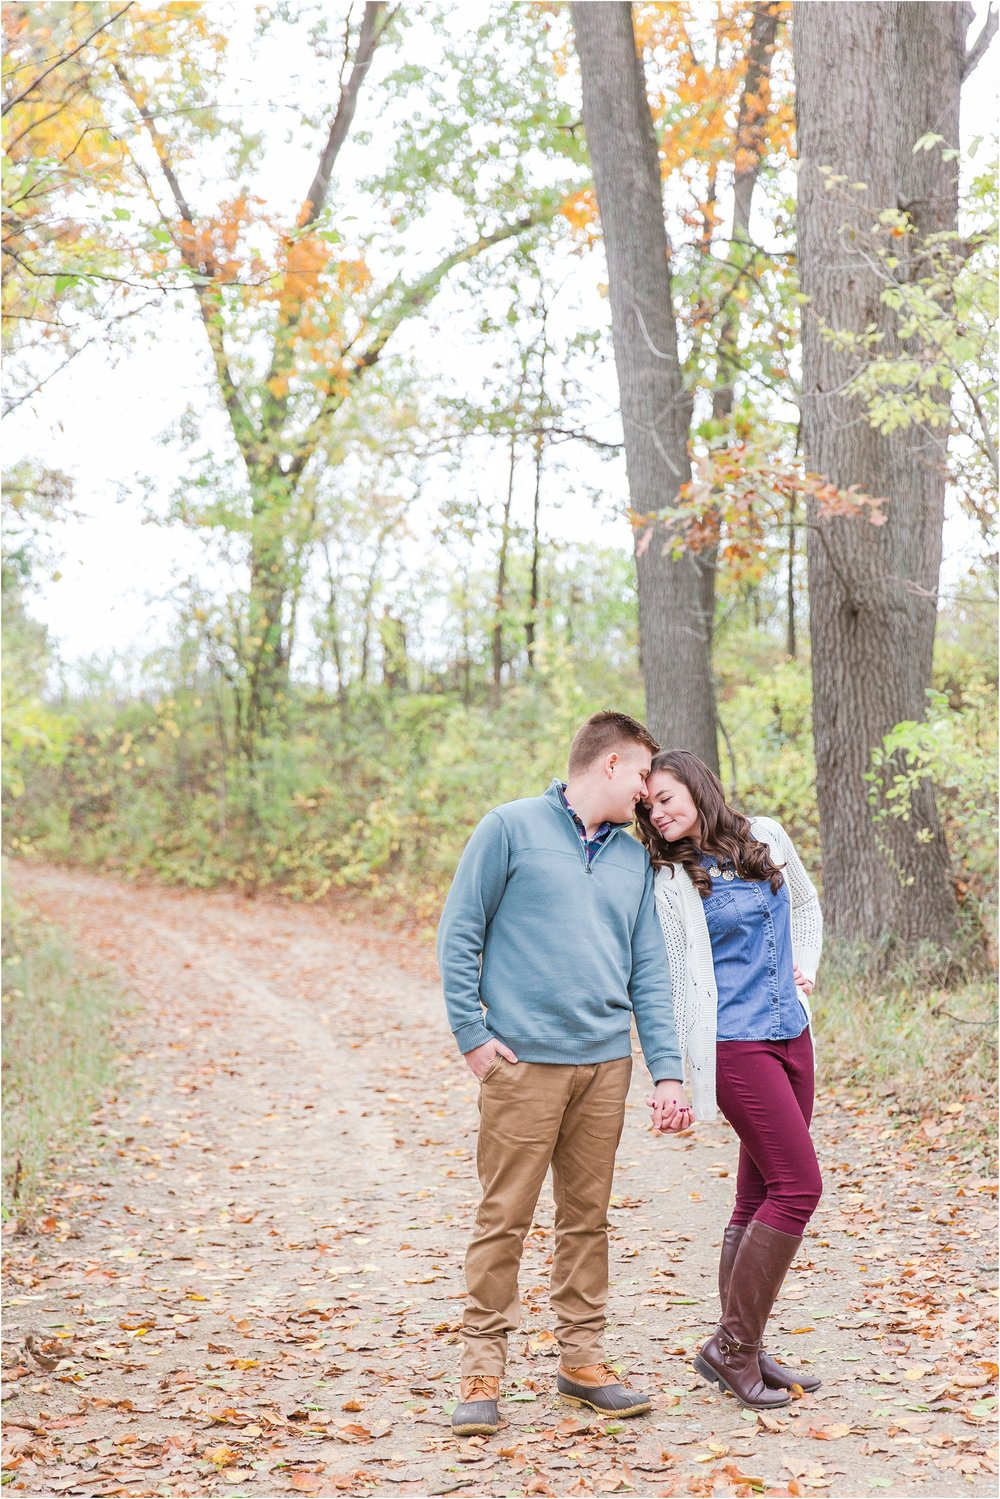 colorful-fall-engagement-photos-at-the-lake-at-huron-meadows-metropark-in-brighton-michigan-by-courtney-carolyn-photography_0023.jpg